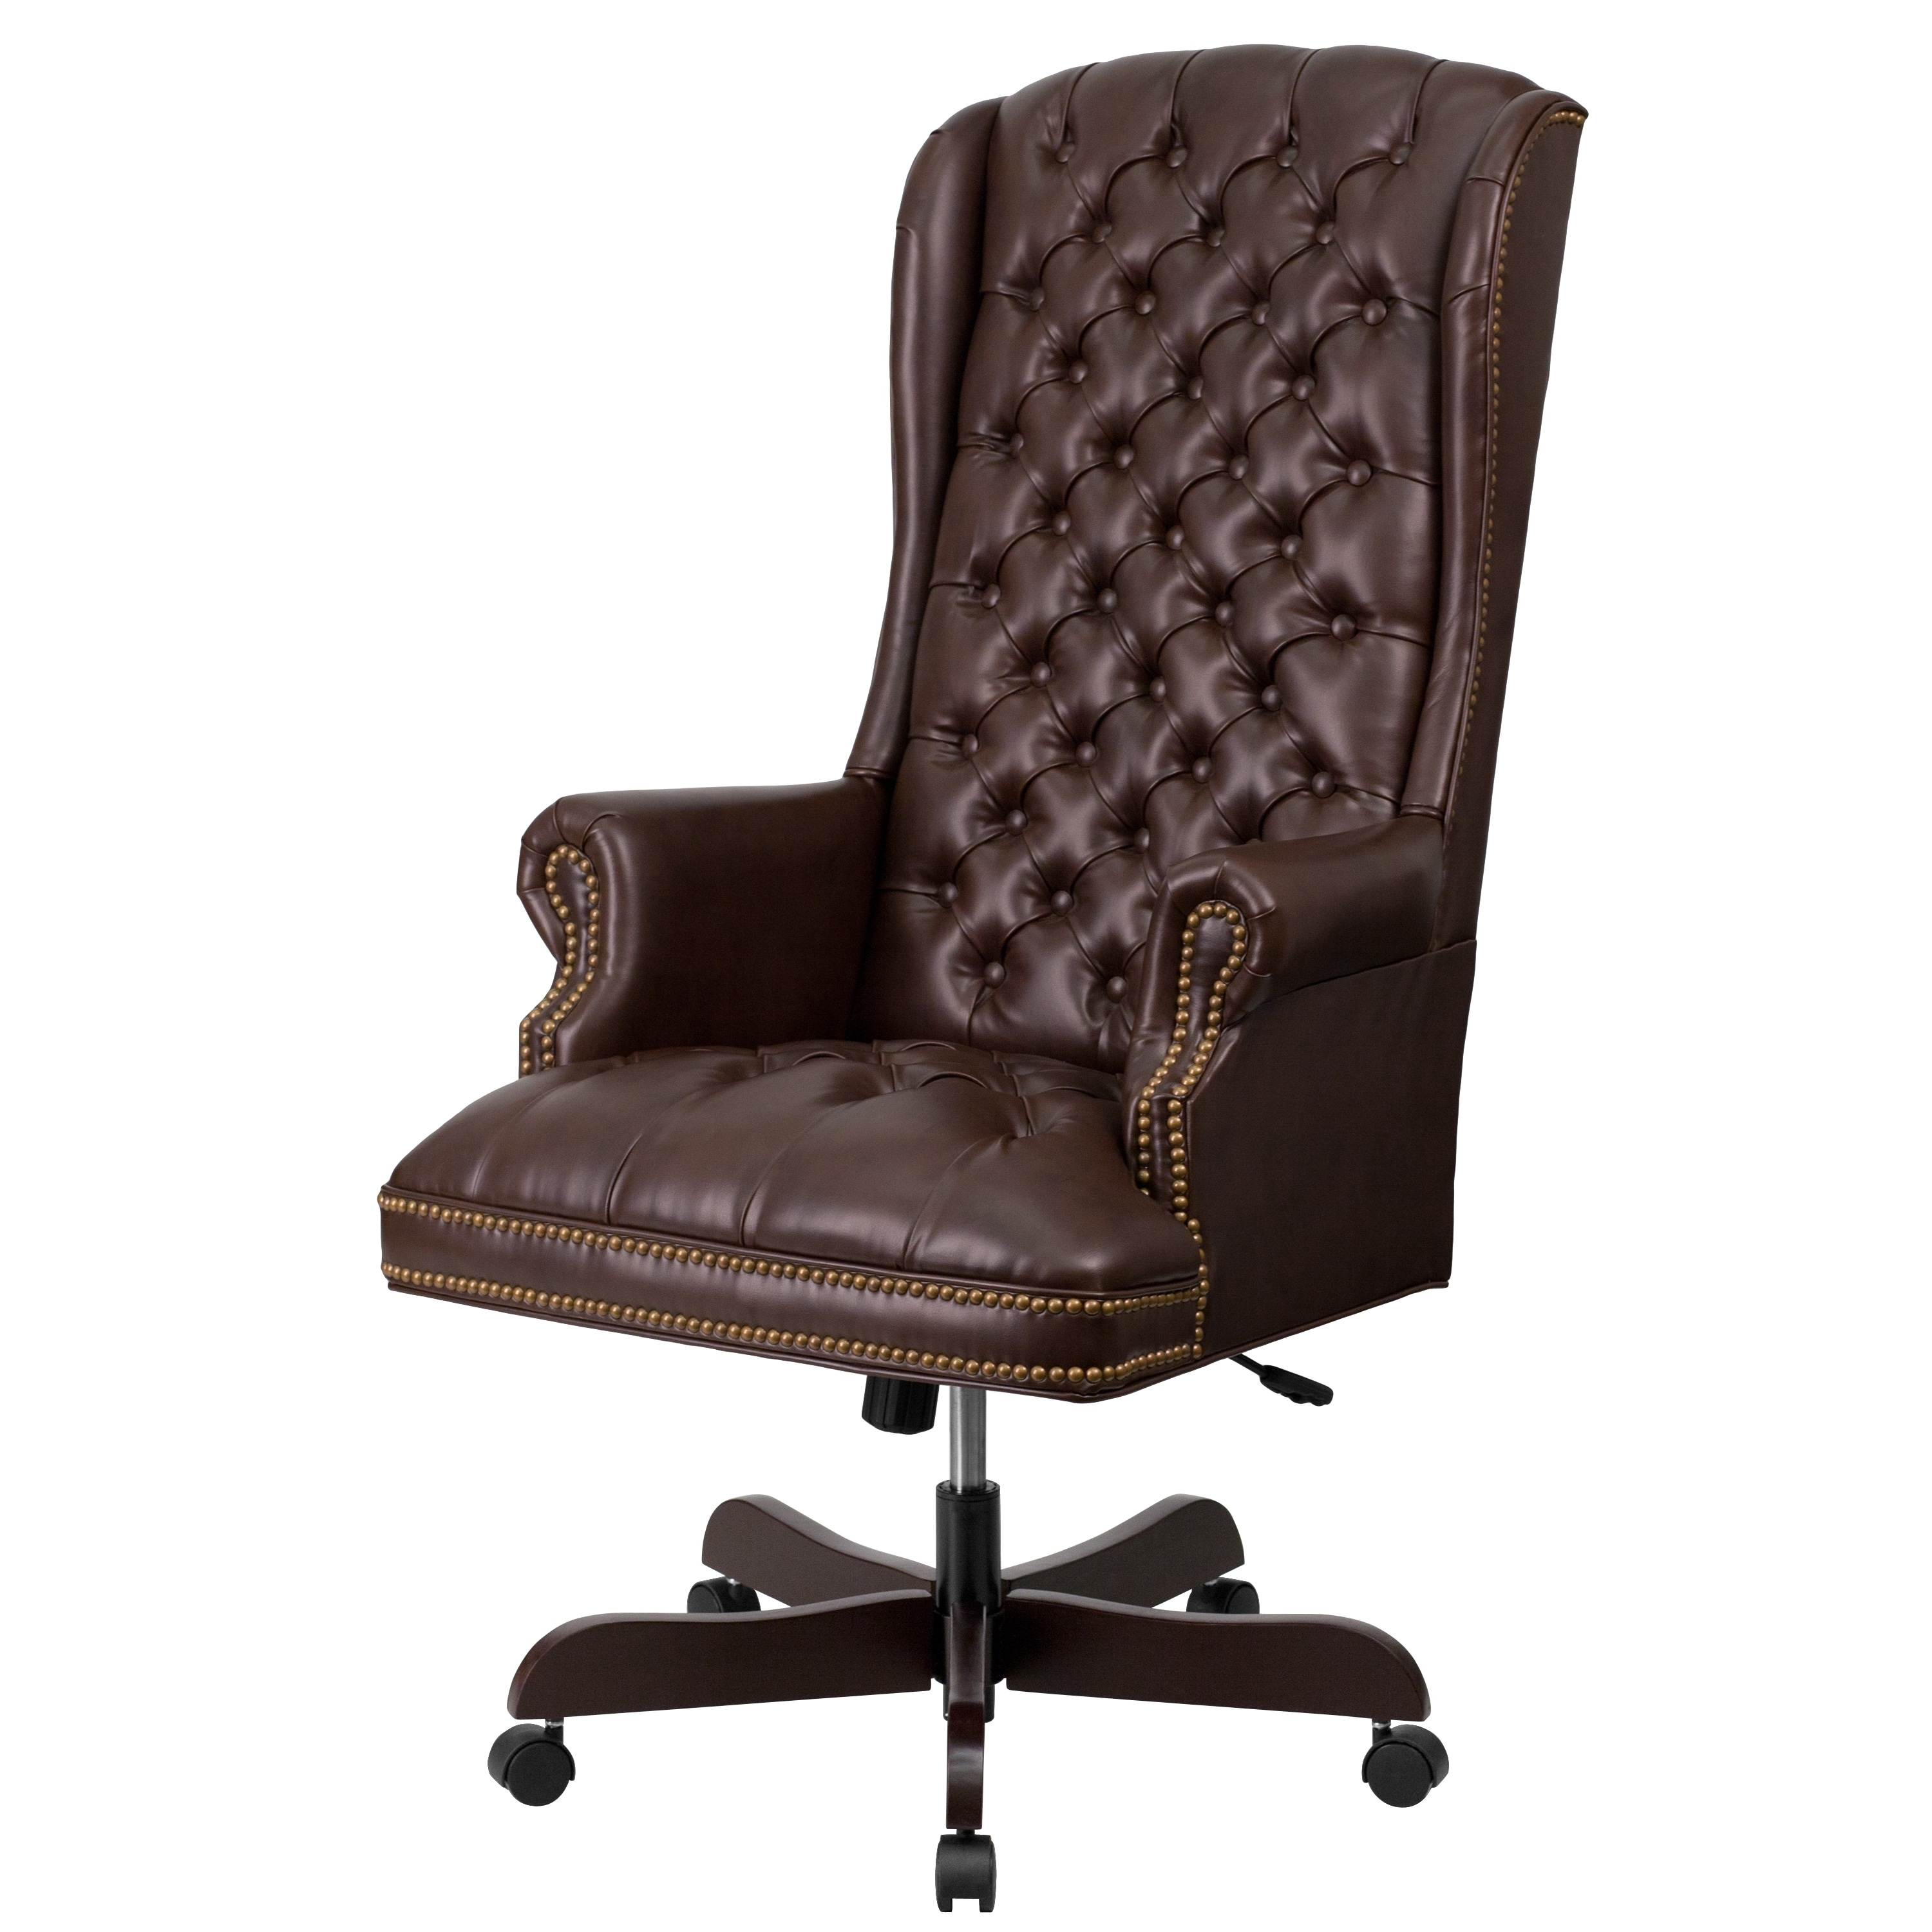 Tufted Leather Office Chair The Best Leather Executive Office Chairs